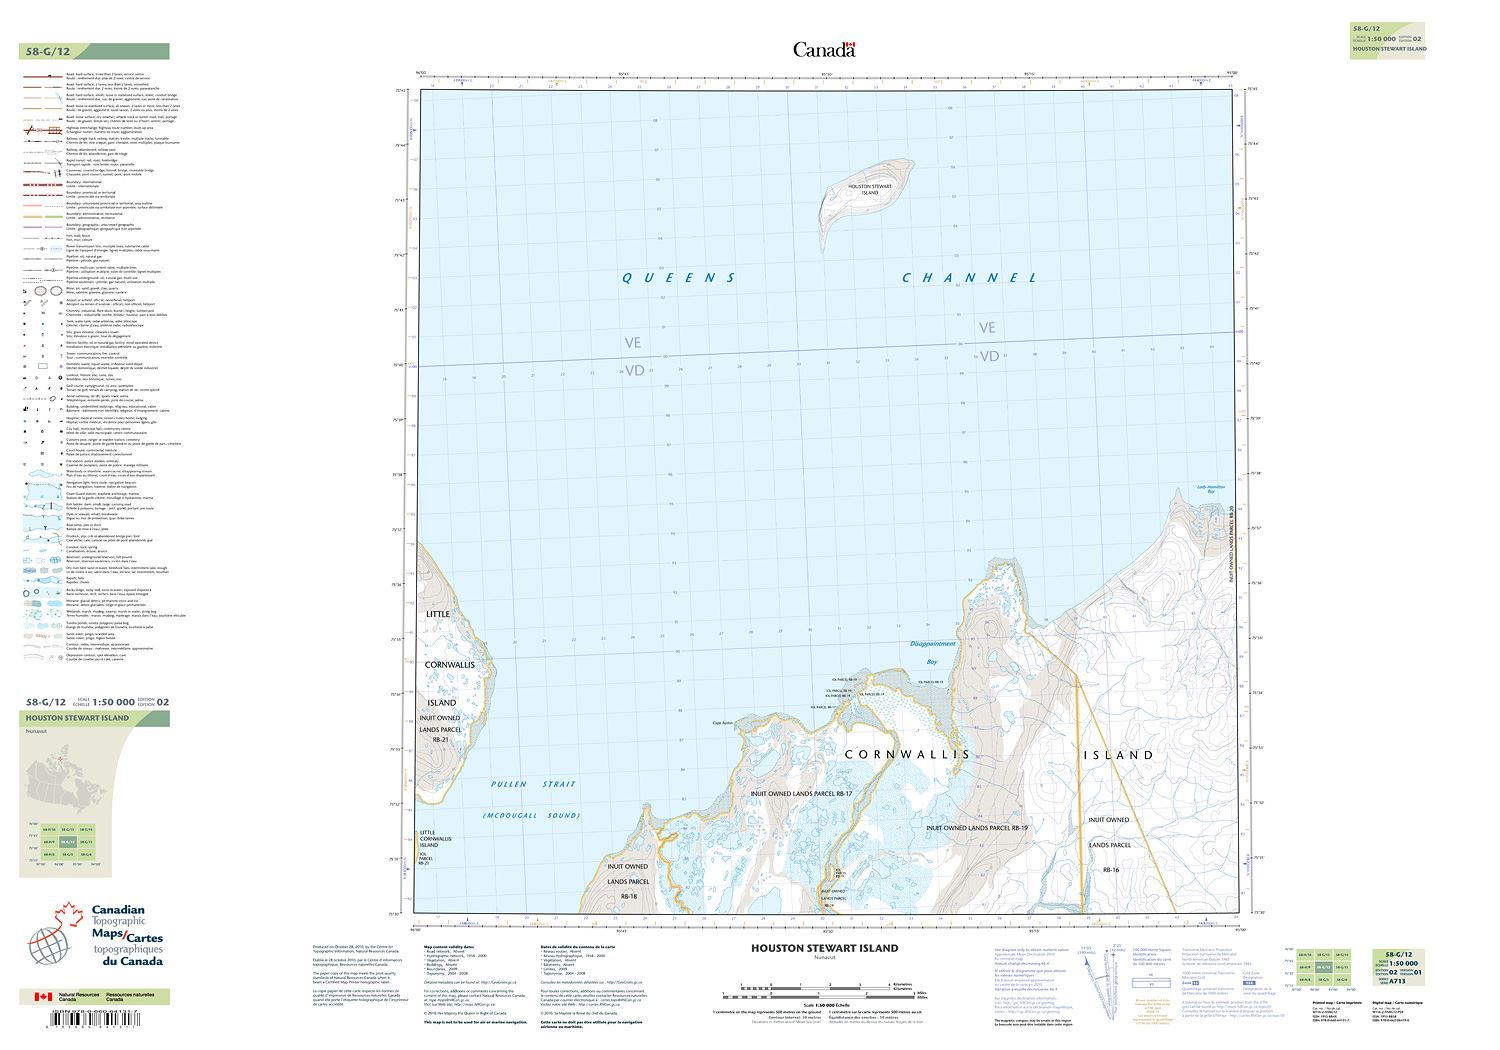 058g12 Houston Stewart Island Topographic Map